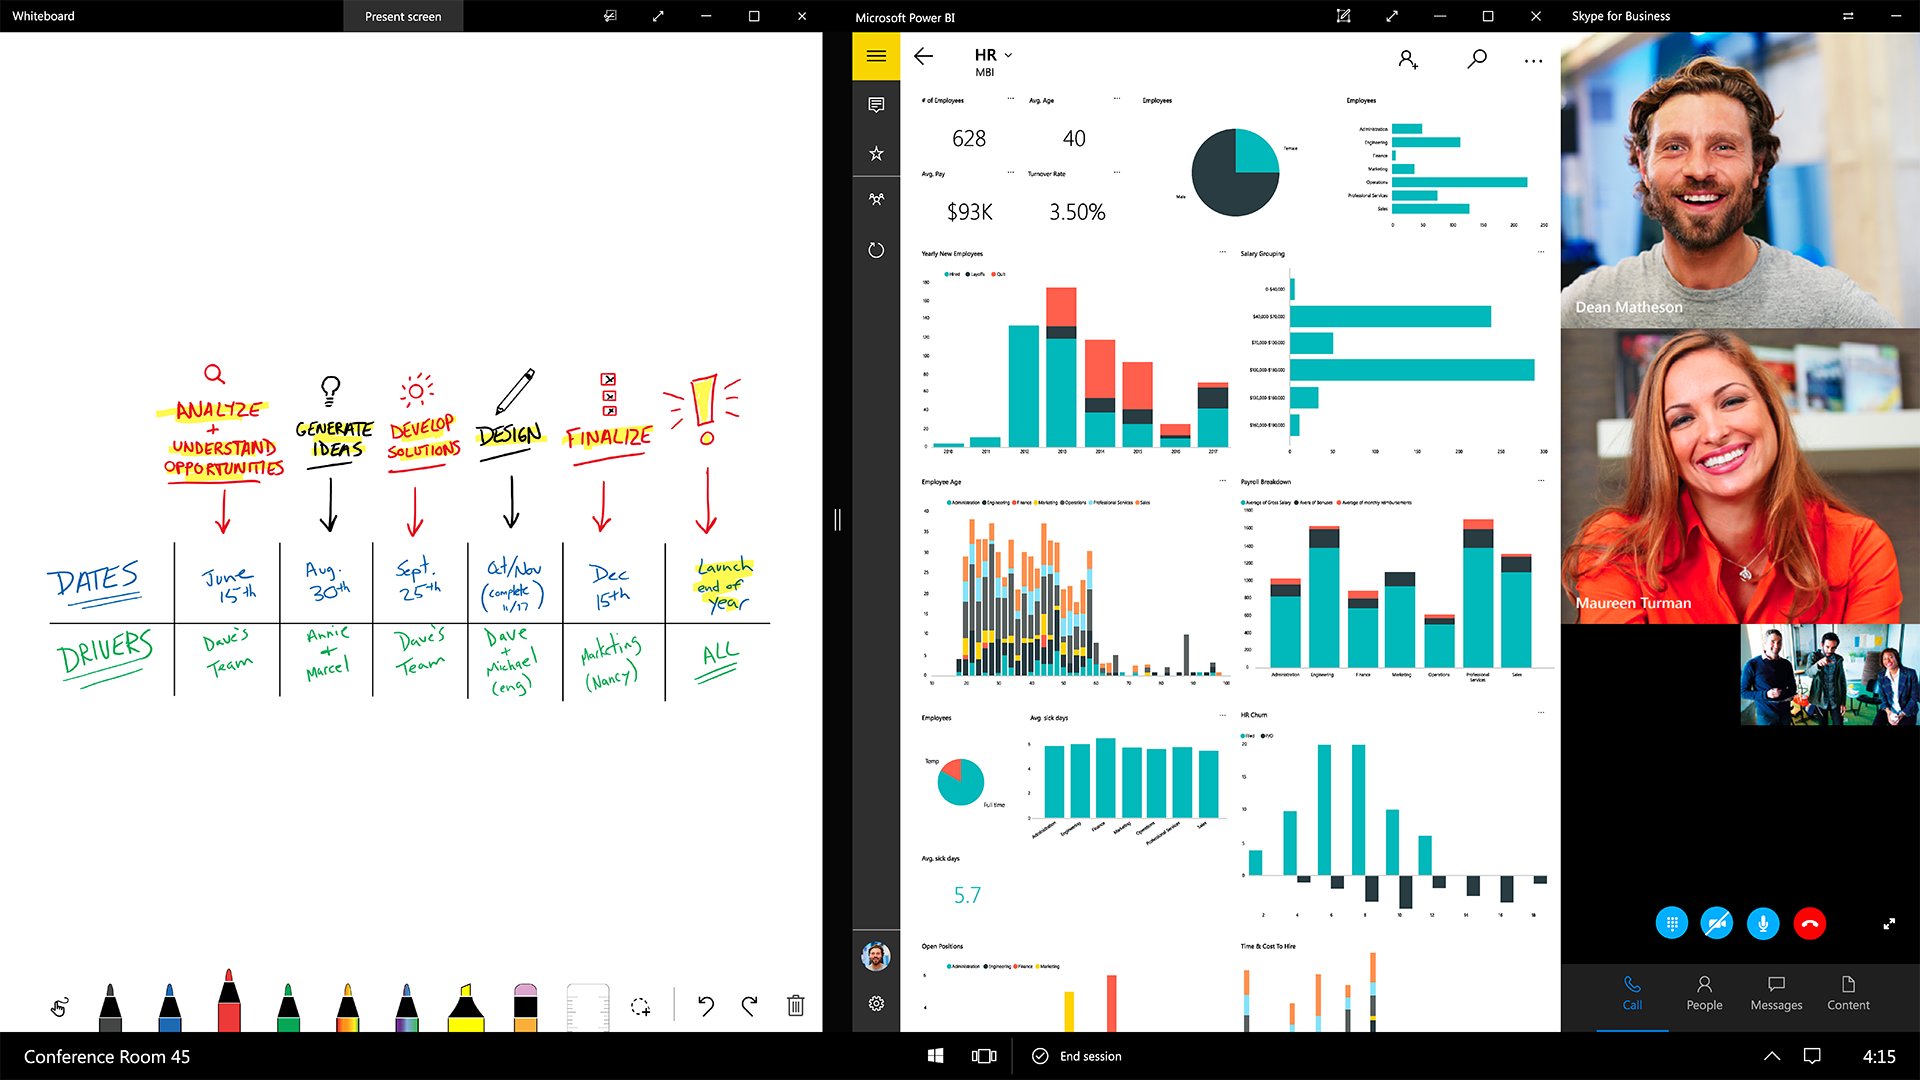 RS2_SurfaceHub_Skype_Whiteboard_PowerBI